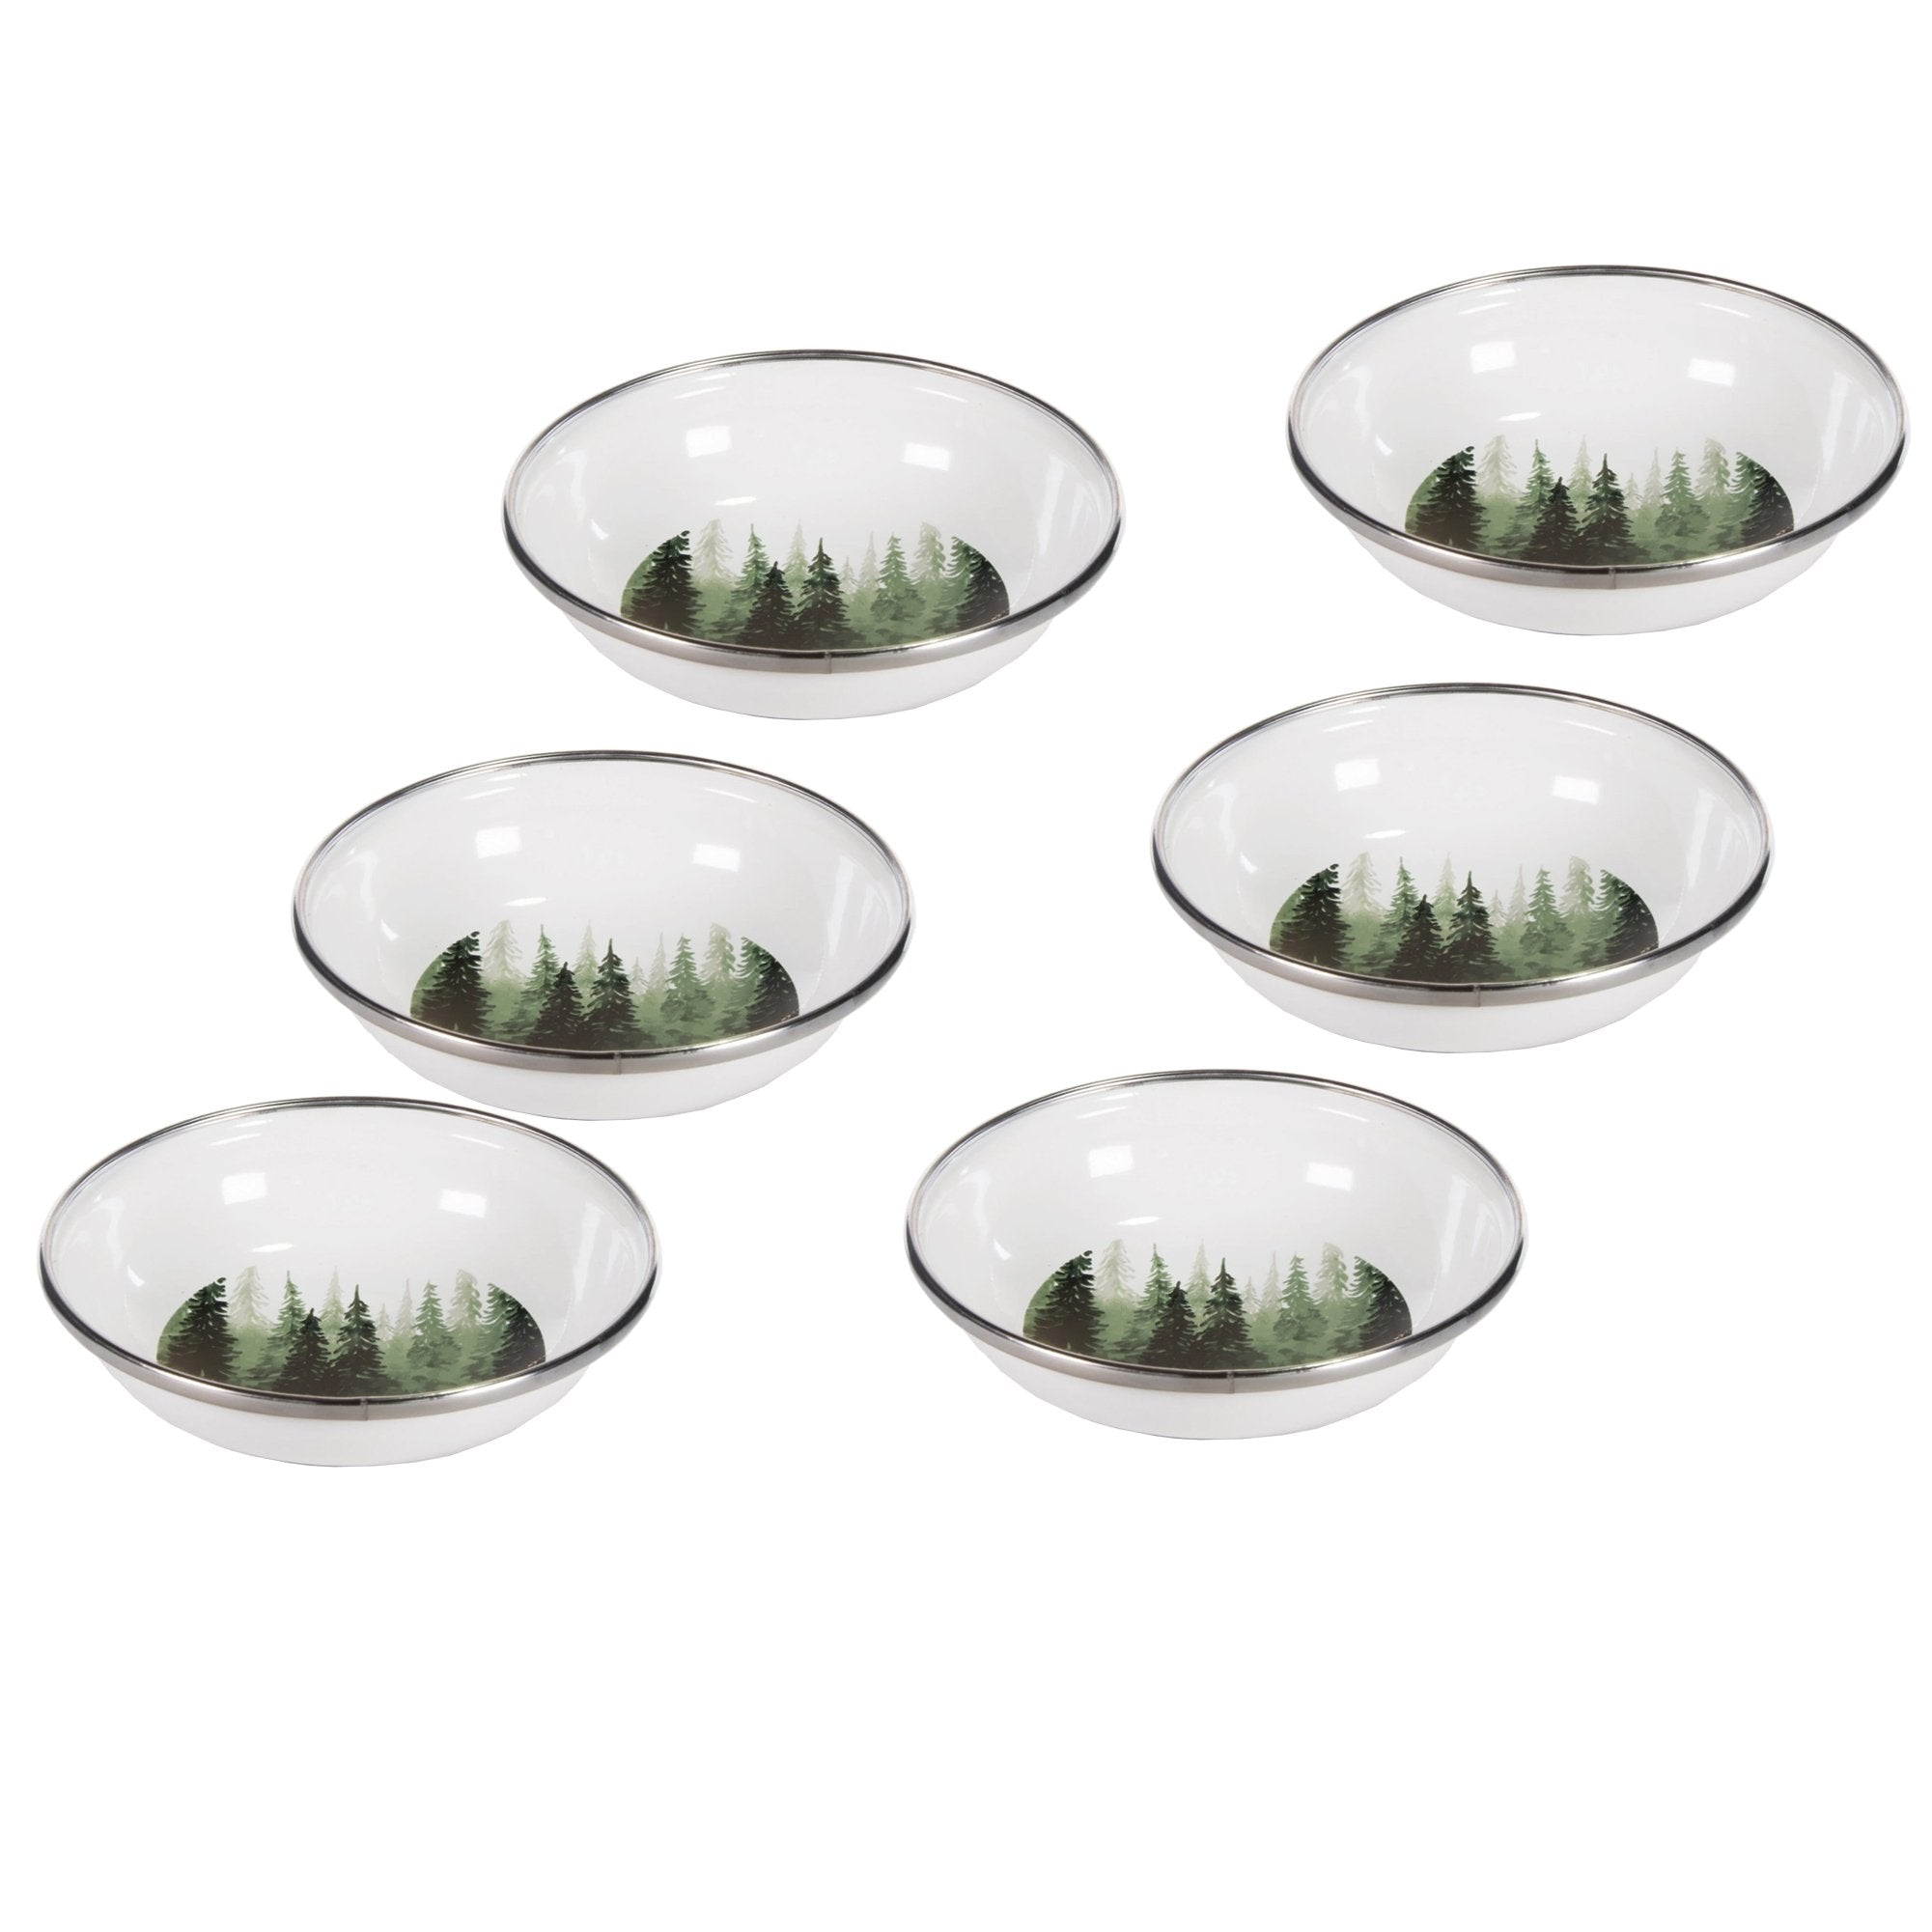 FG59 - Forest Glen Pattern - Enamelware Tasting Dish - by Golden Rabbit